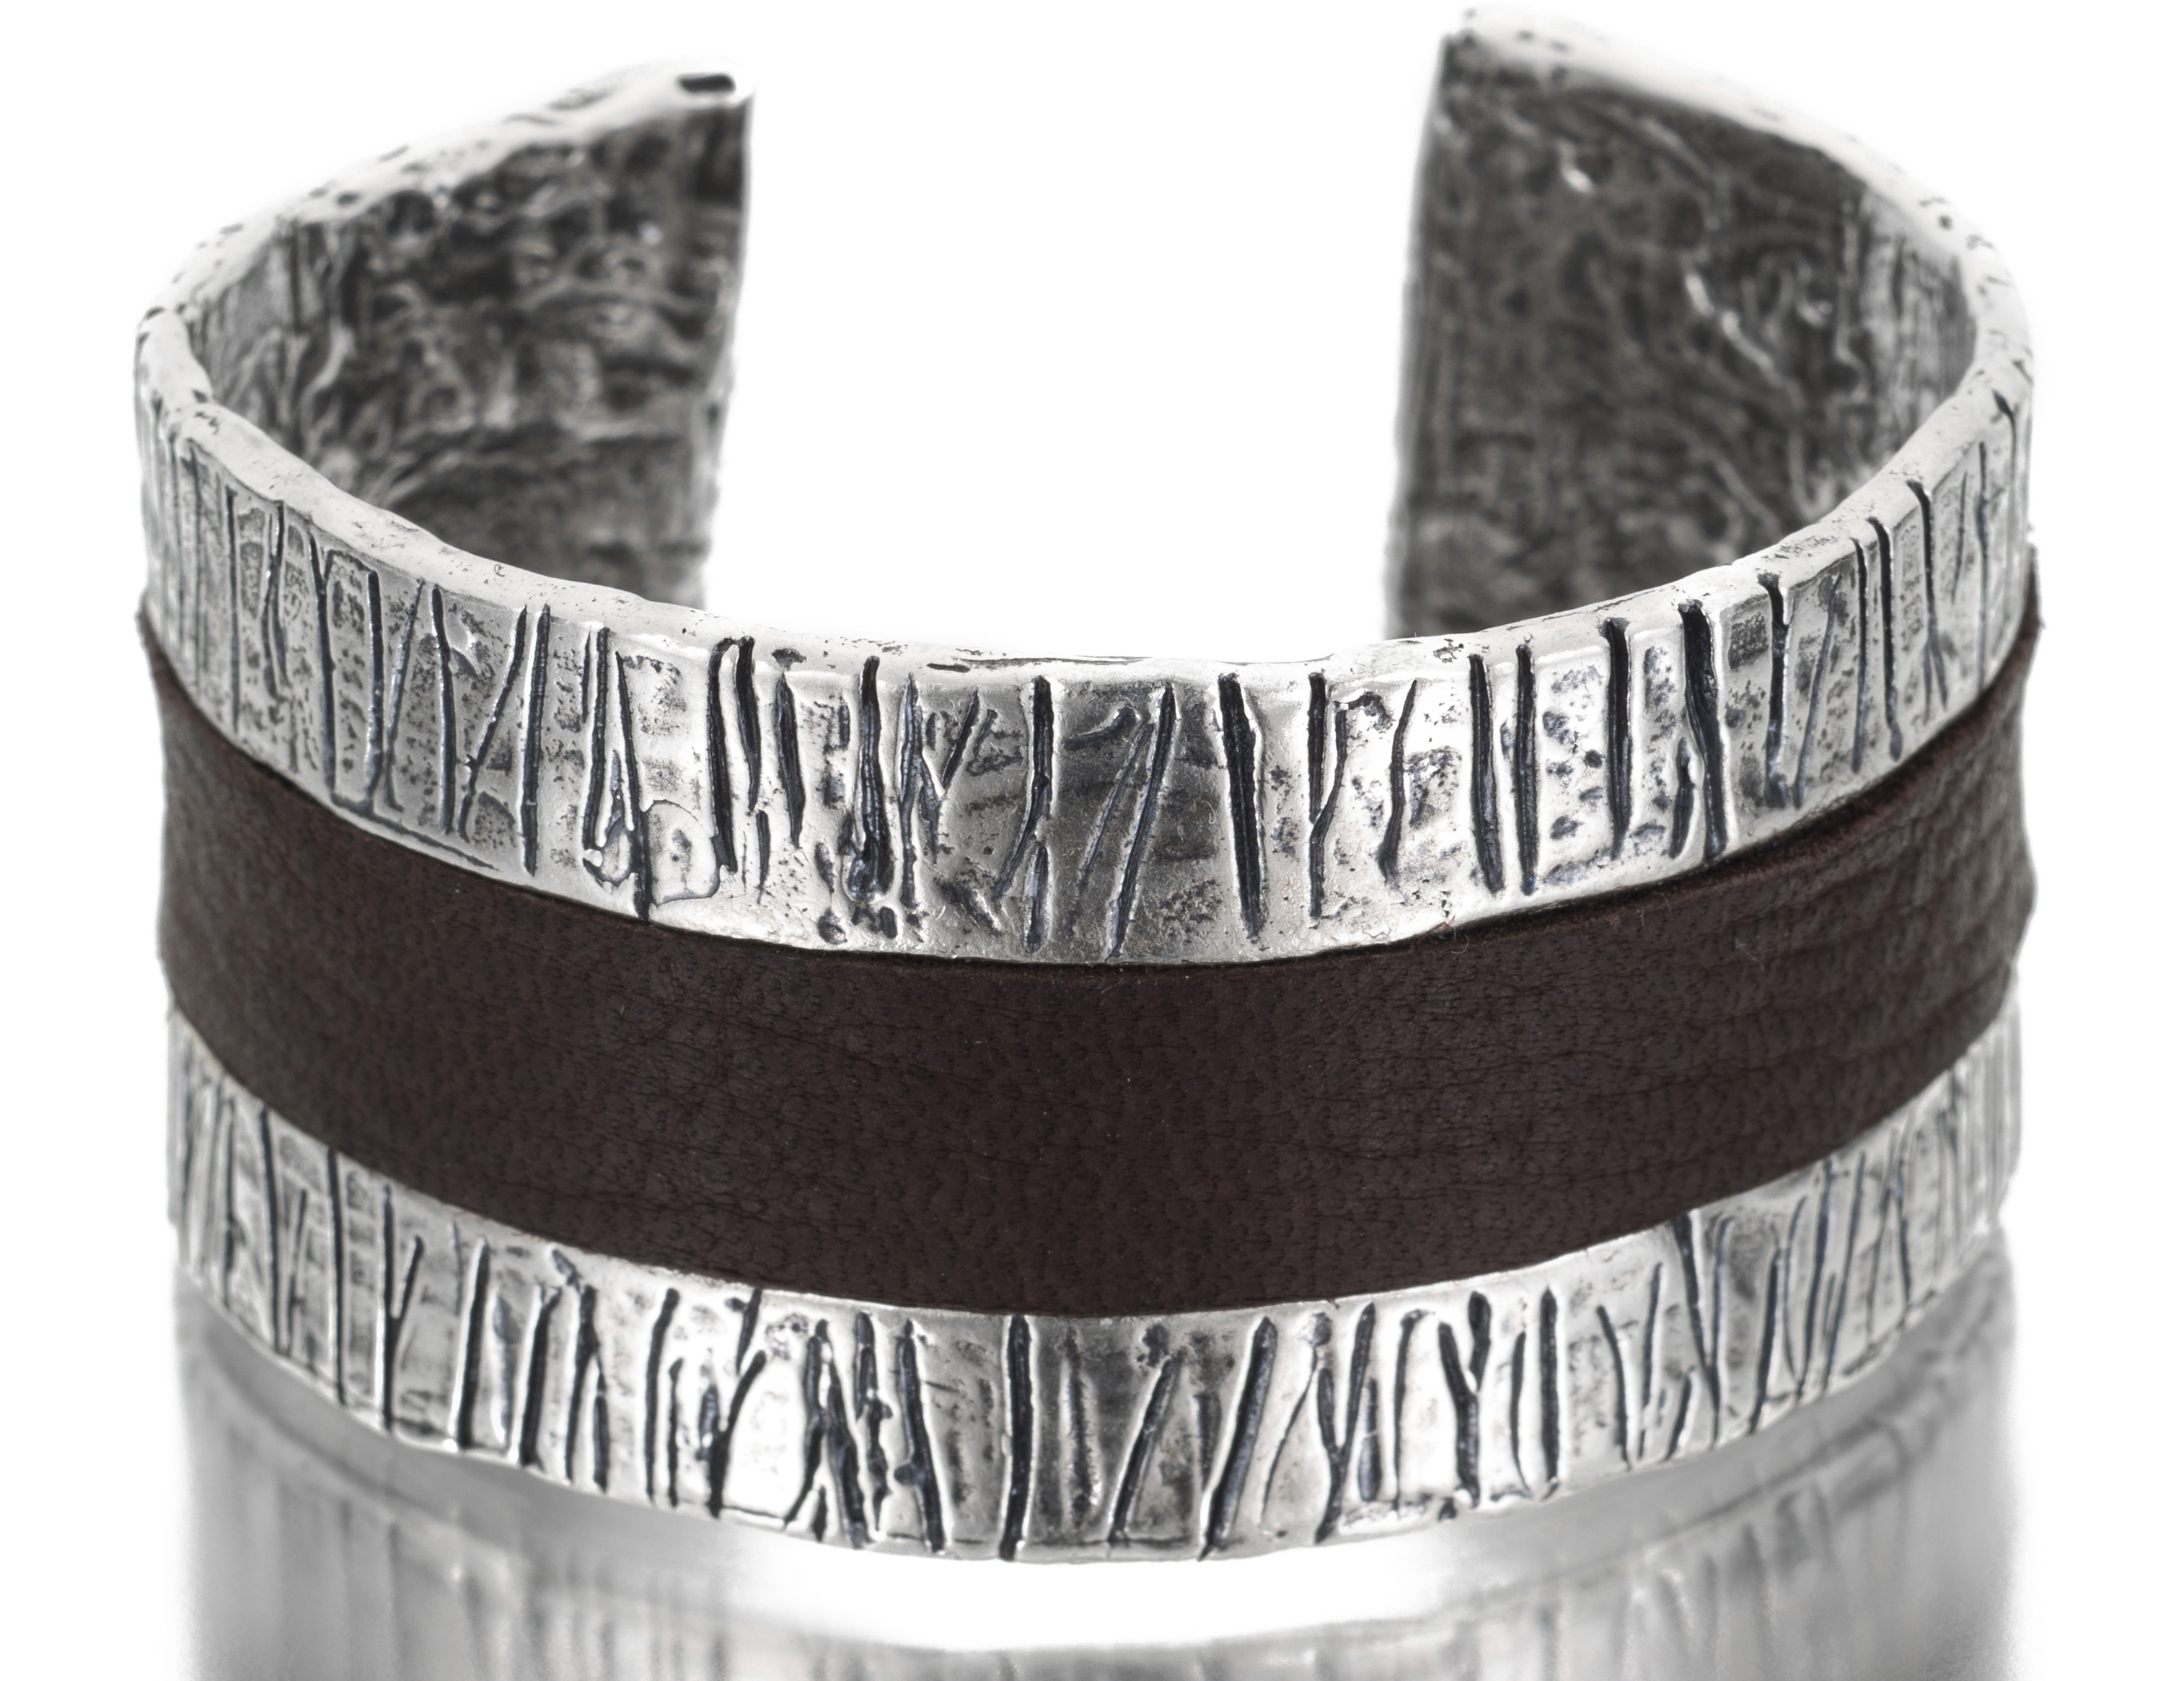 Lauren and Gracia leather channel cuff bracelet | JCK On Your Market